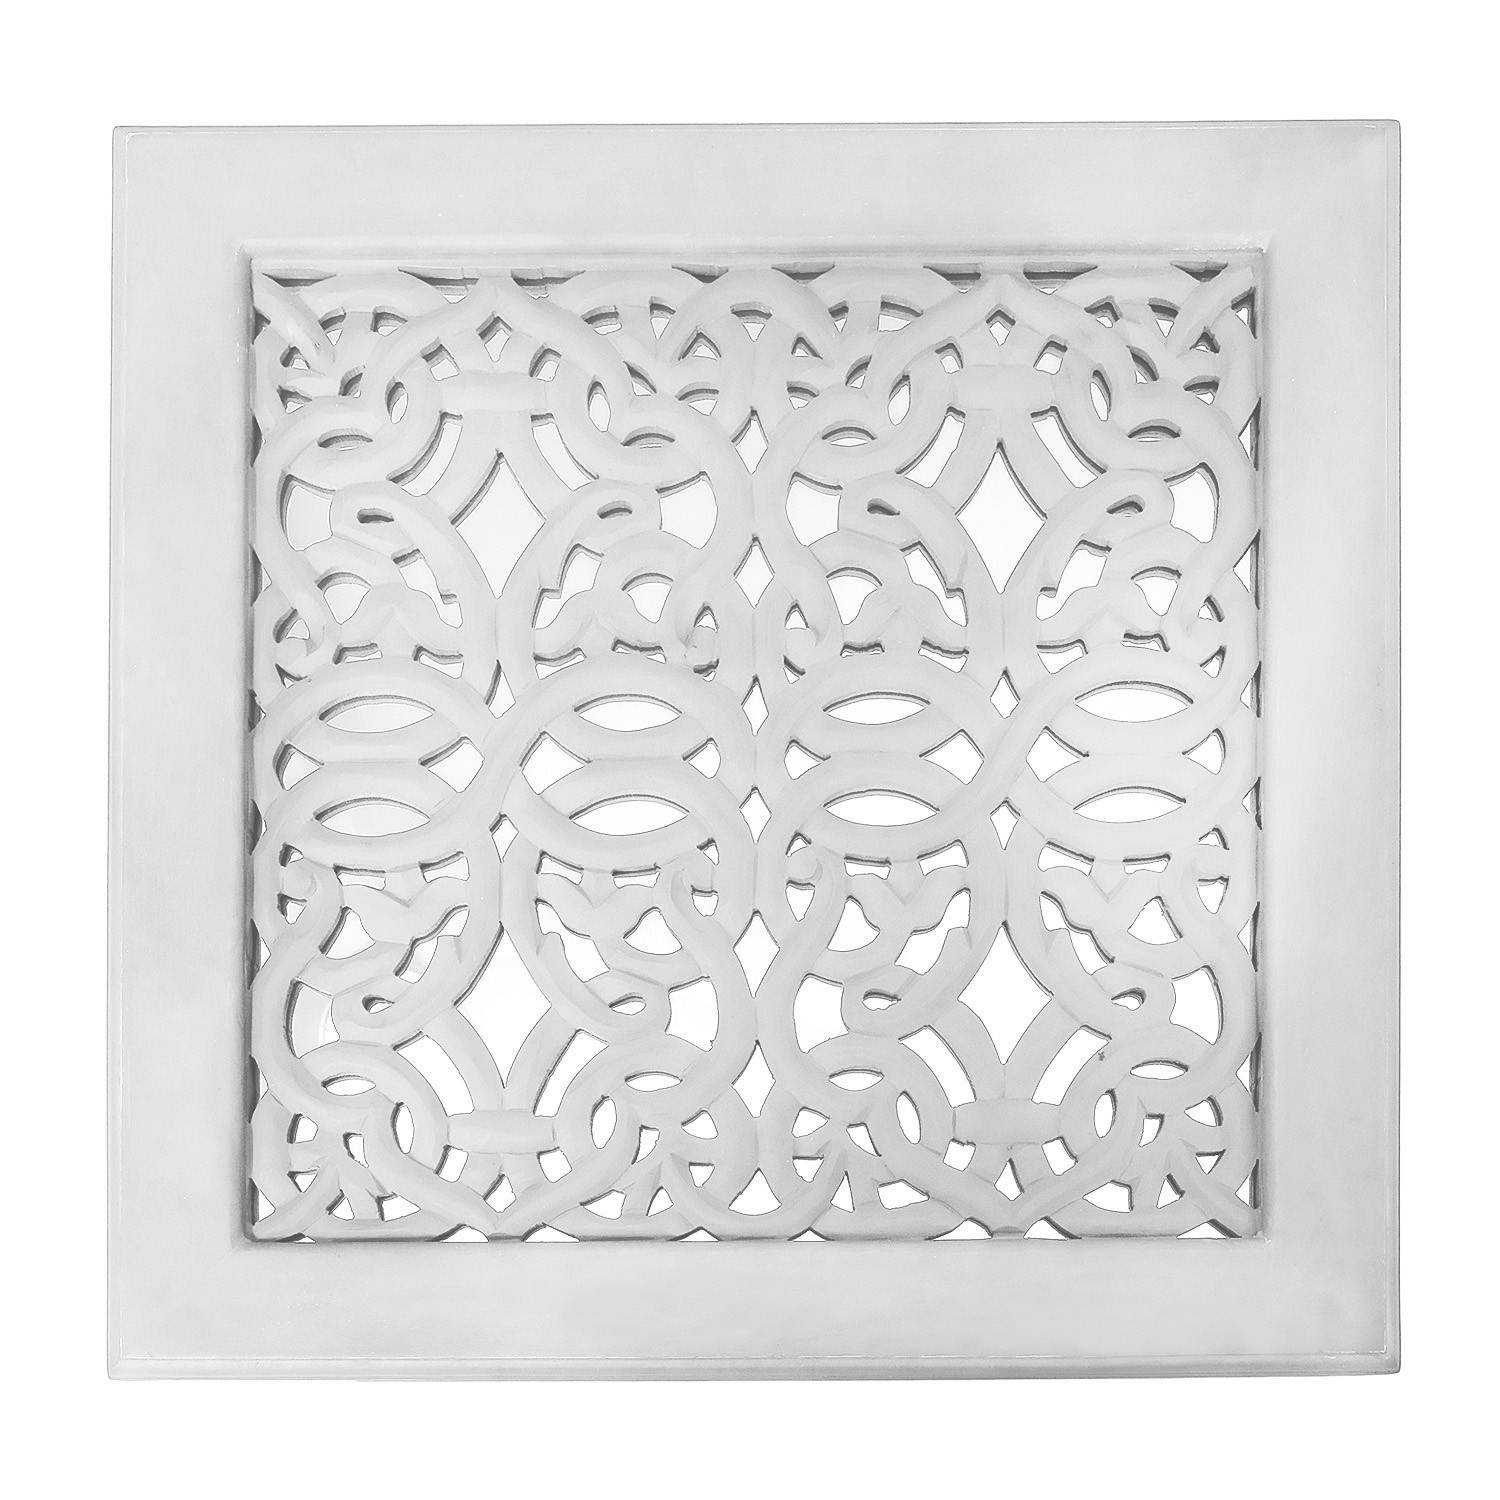 Fretwork Wall Art: White (set Of 3) | The Yellow Door Store Inside Most Recently Released Fretwork Wall Art (View 3 of 25)